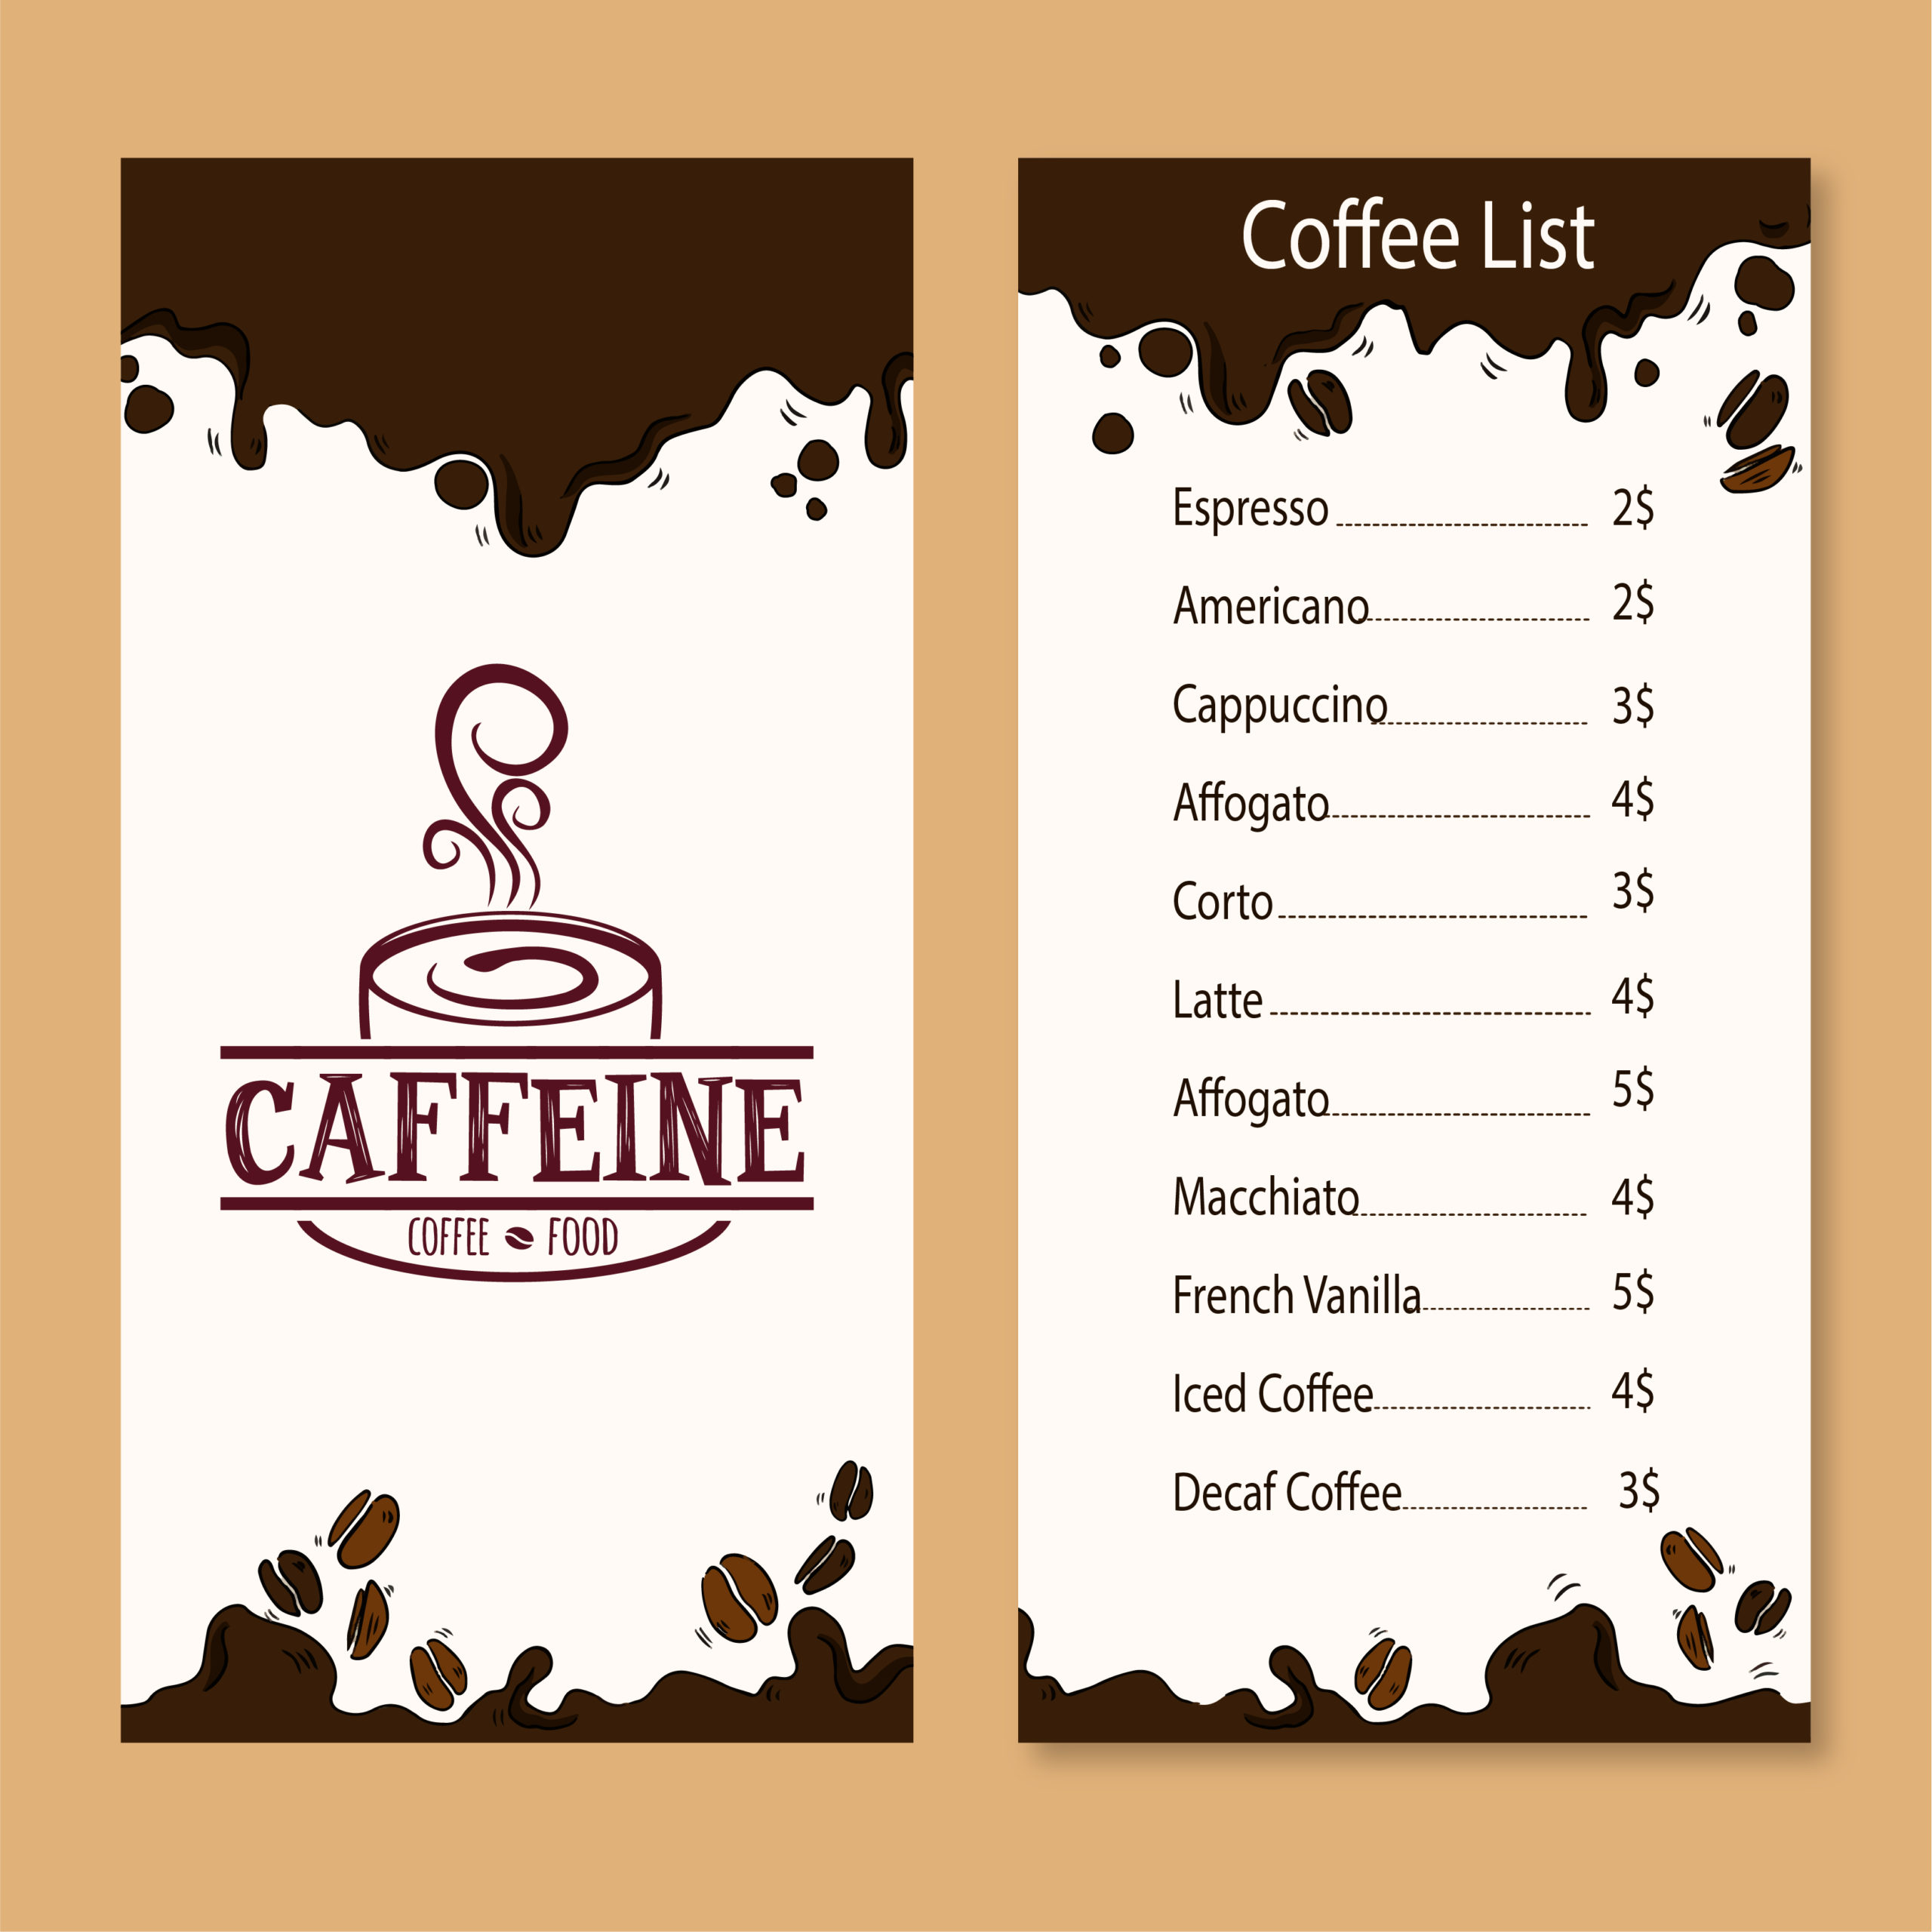 Caffeine and café menu card design by Badri design